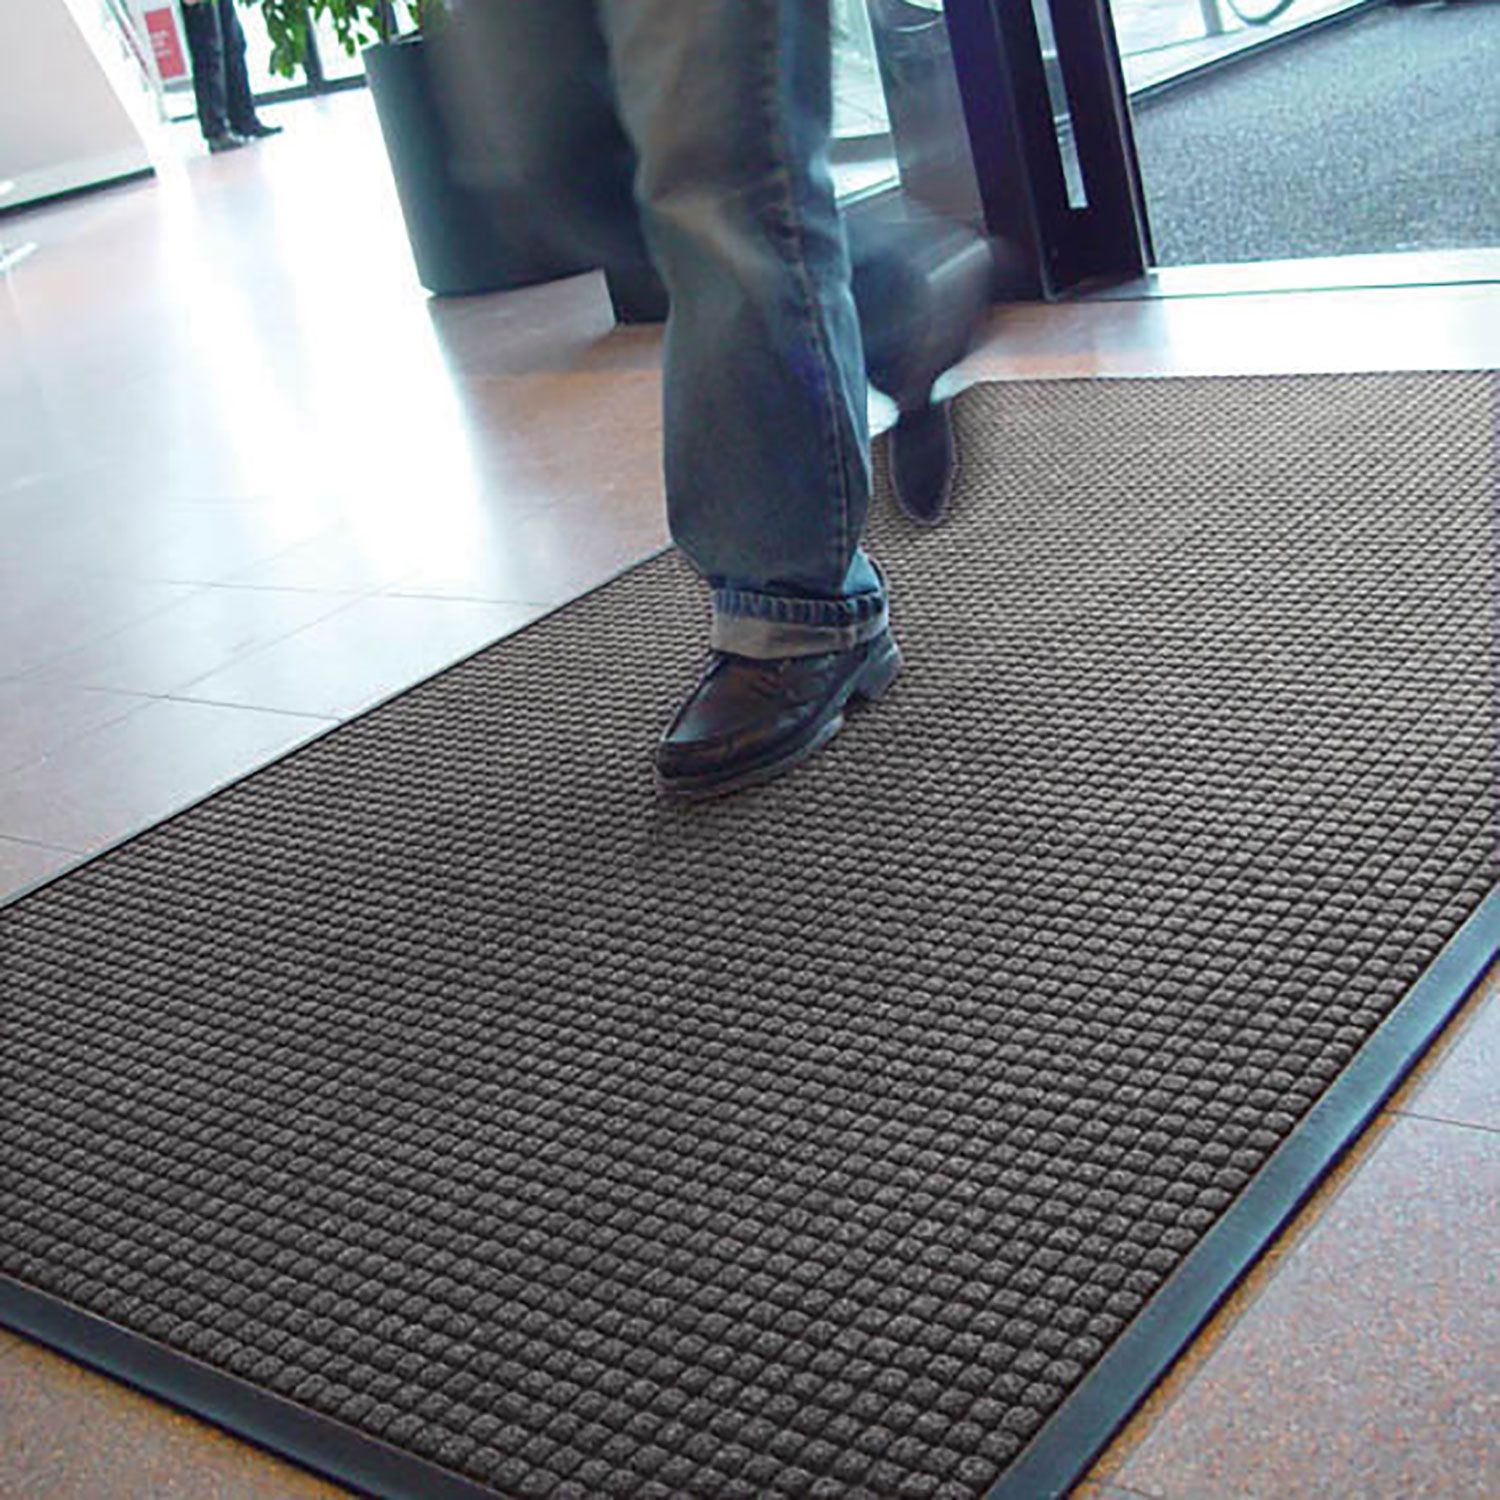 Guzzler Is Intended For Use In Medium To Heavy Traffic Areas The Raised Crushproof Waffle Design Of Guz Rubber Flooring Kitchen Mats Floor Plastic Floor Mat